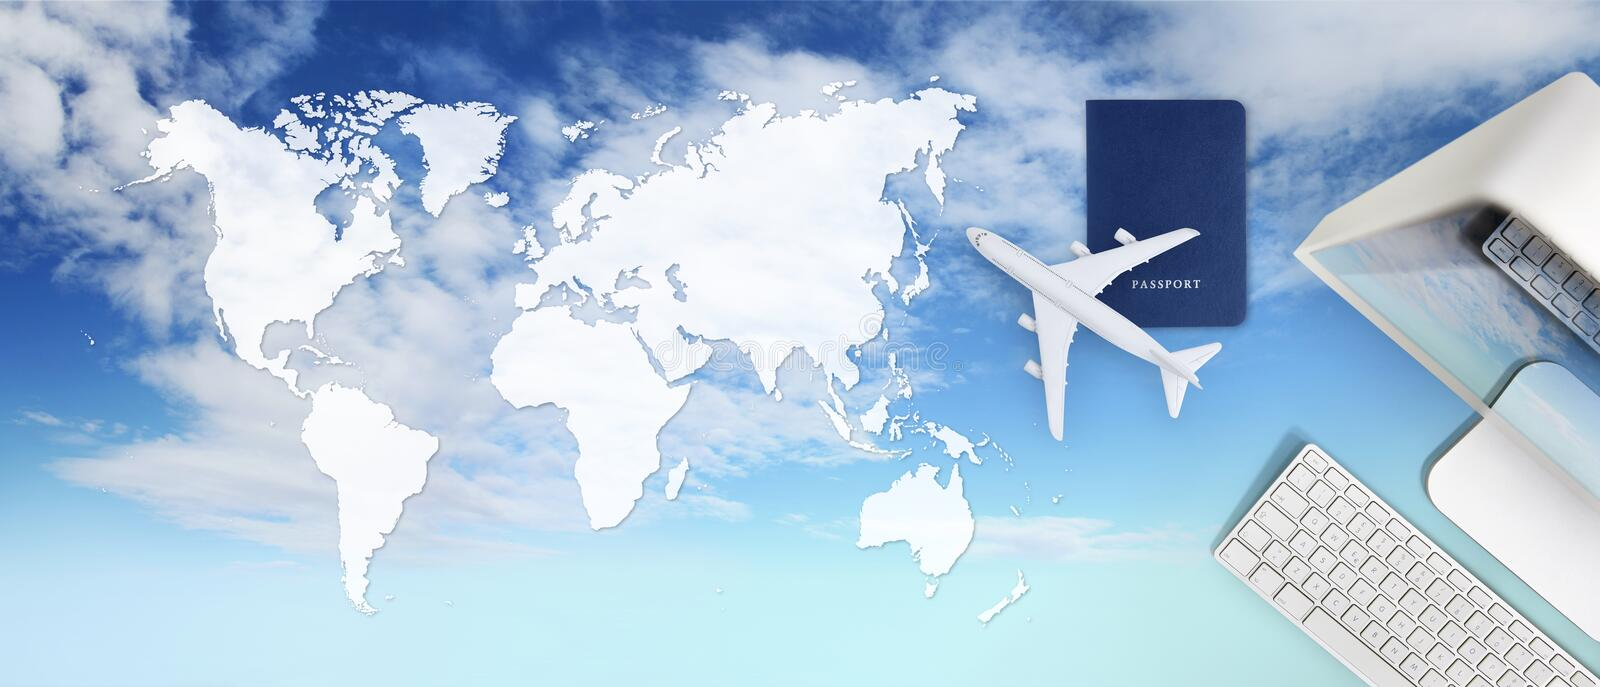 Booking and search flight ticket air travel vacation concept, passport, computer and airplane in sky background with global map royalty free stock image